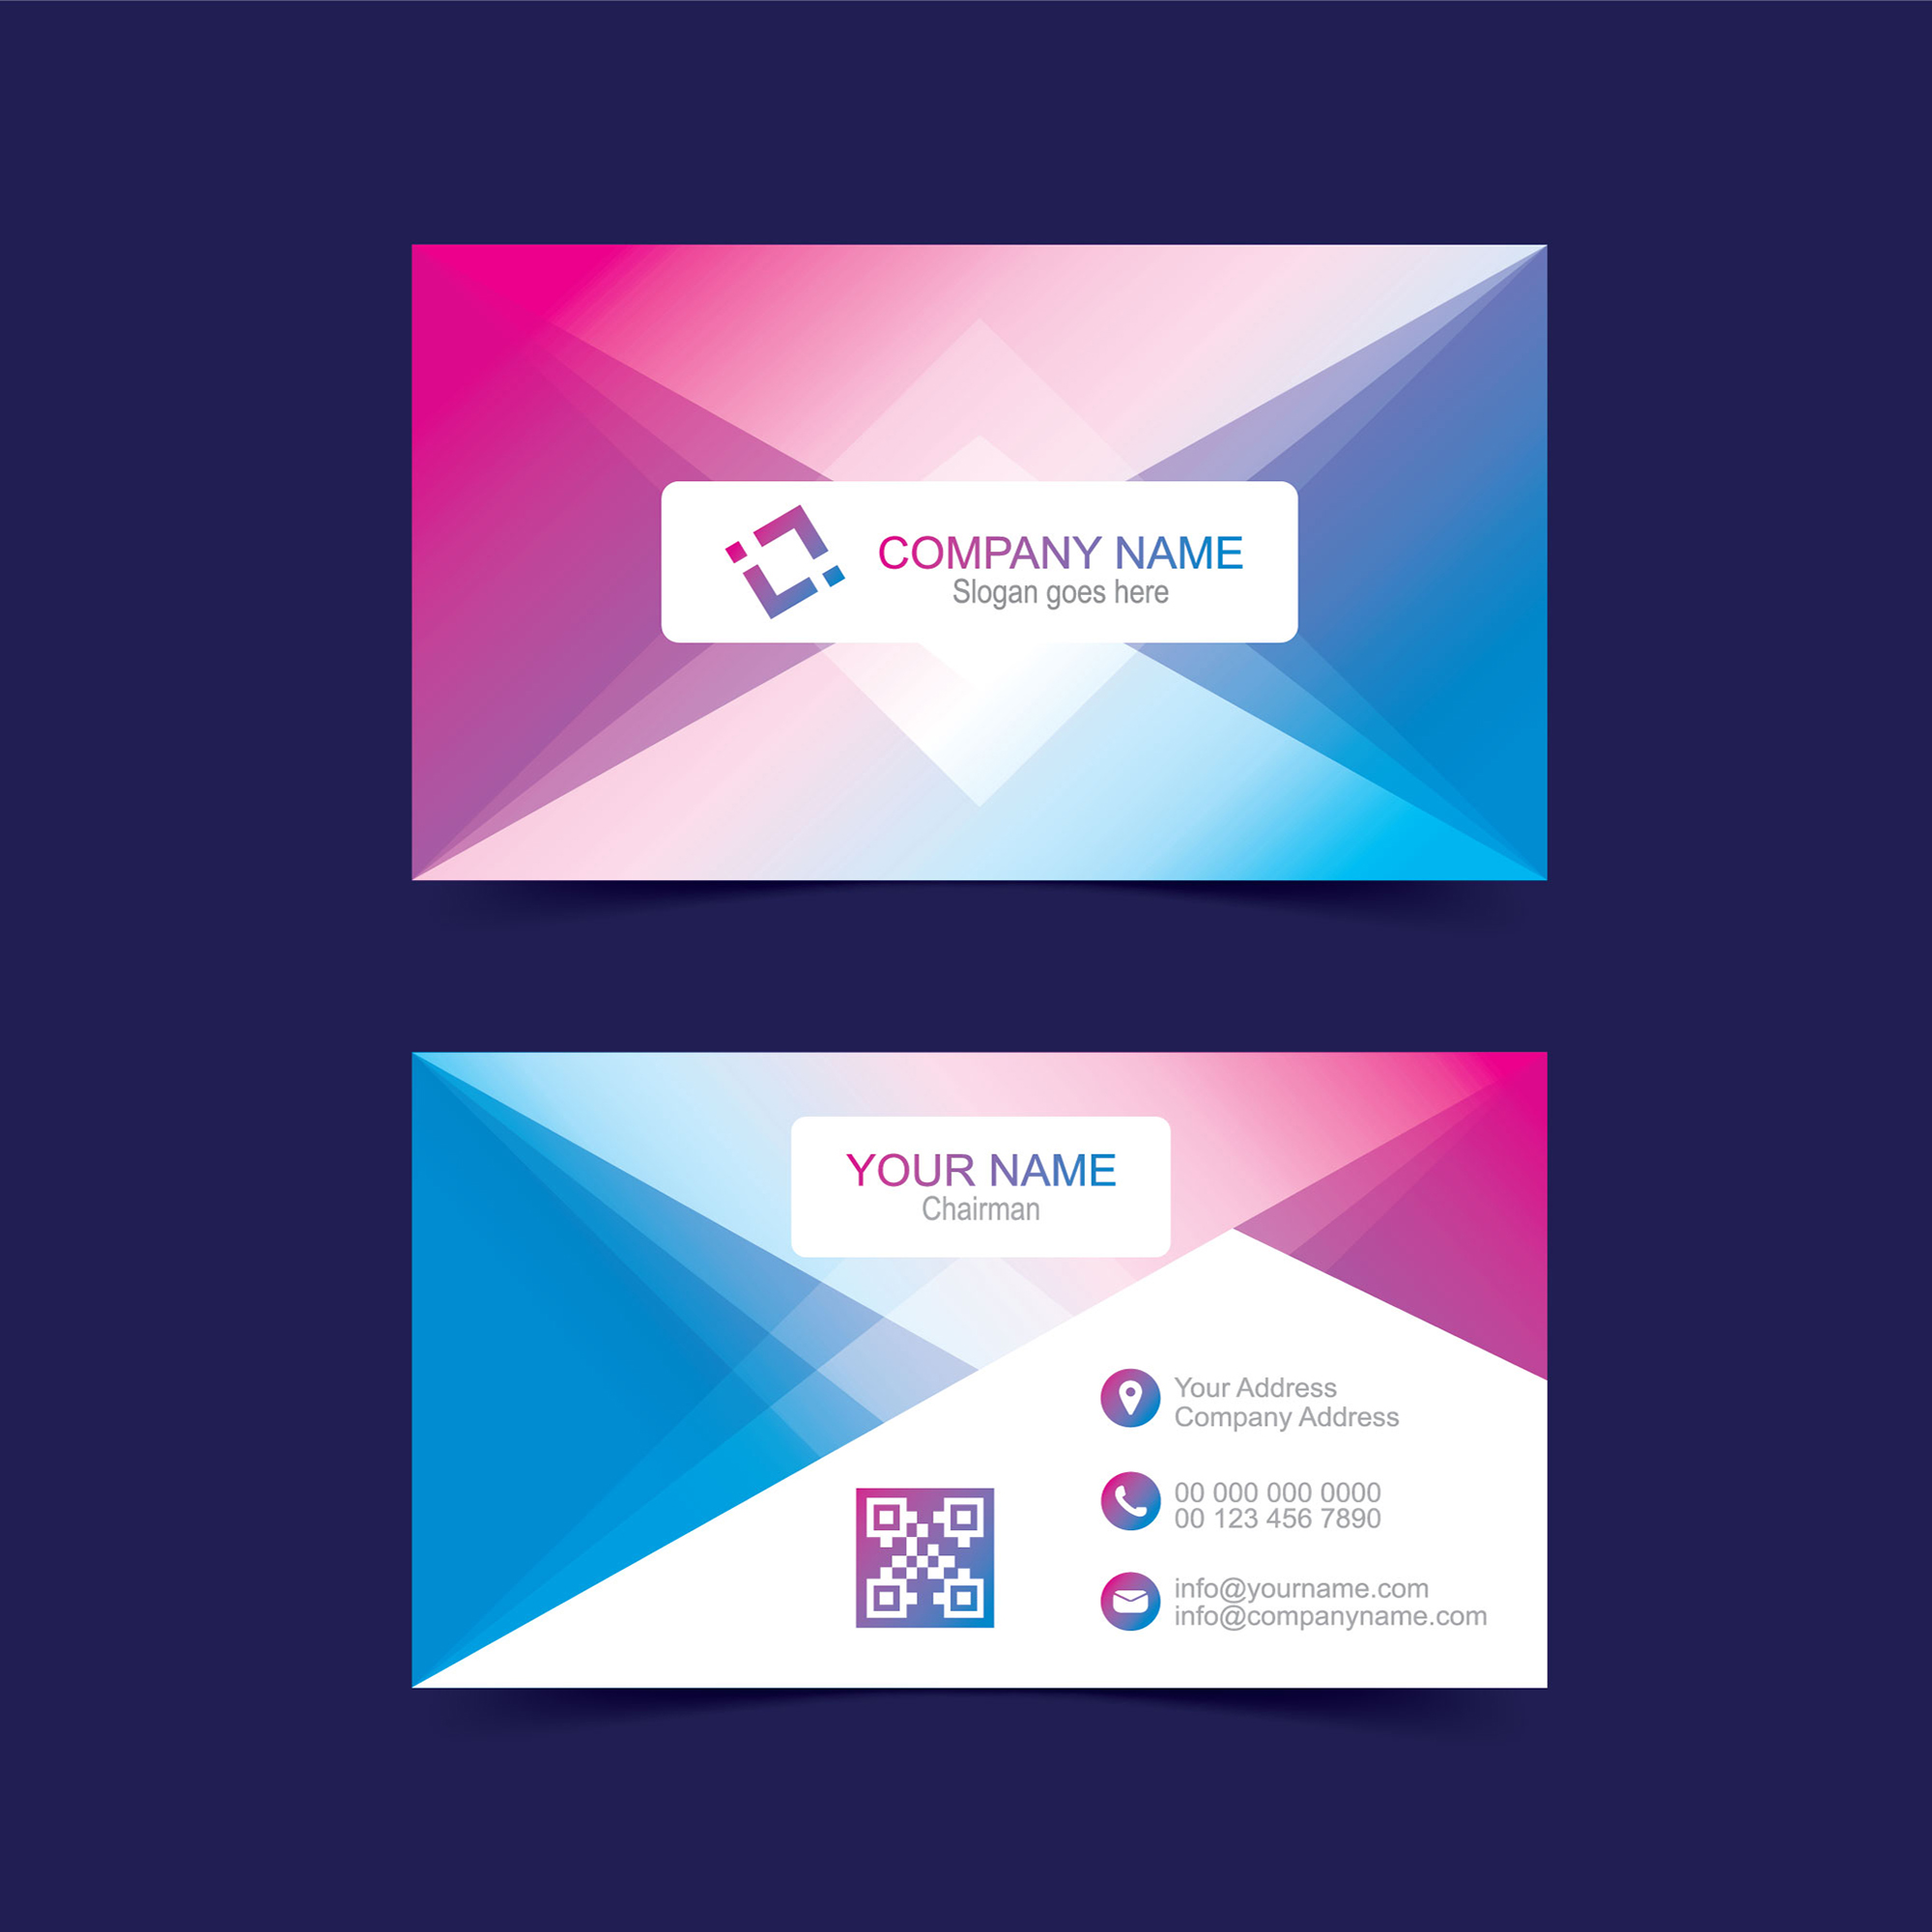 Business card template free download wisxi business card business cards business card design business card template design templates alramifo Image collections